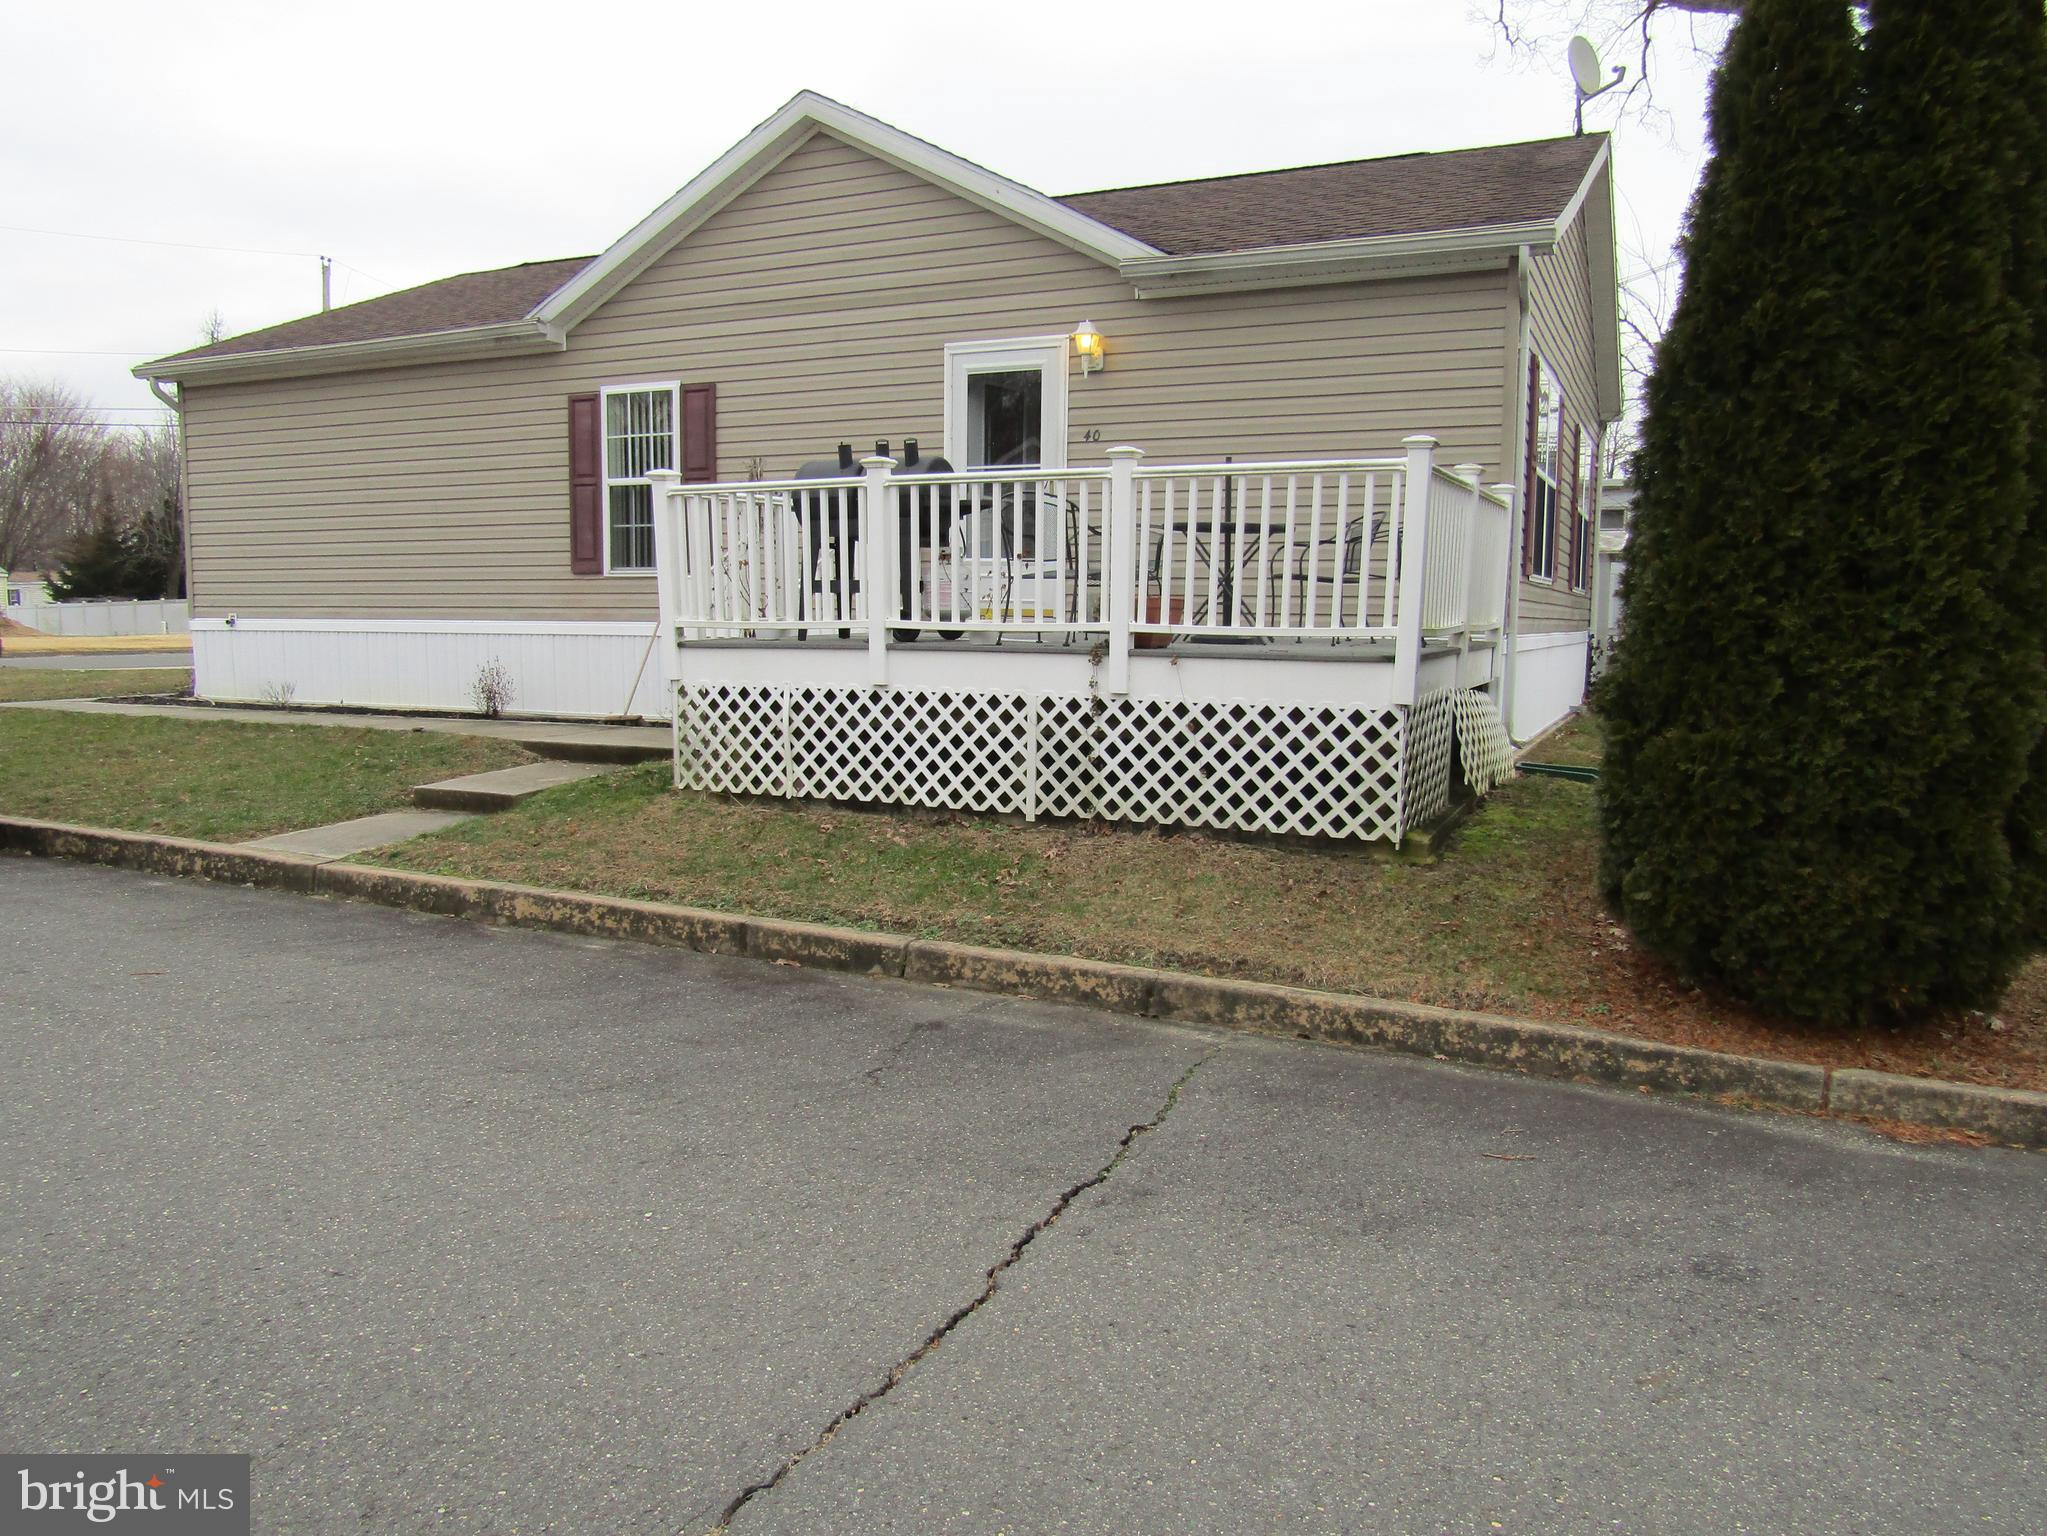 194 JACOBSTOWN NEW EGYPT ROAD 40, WRIGHTSTOWN, NJ 08562